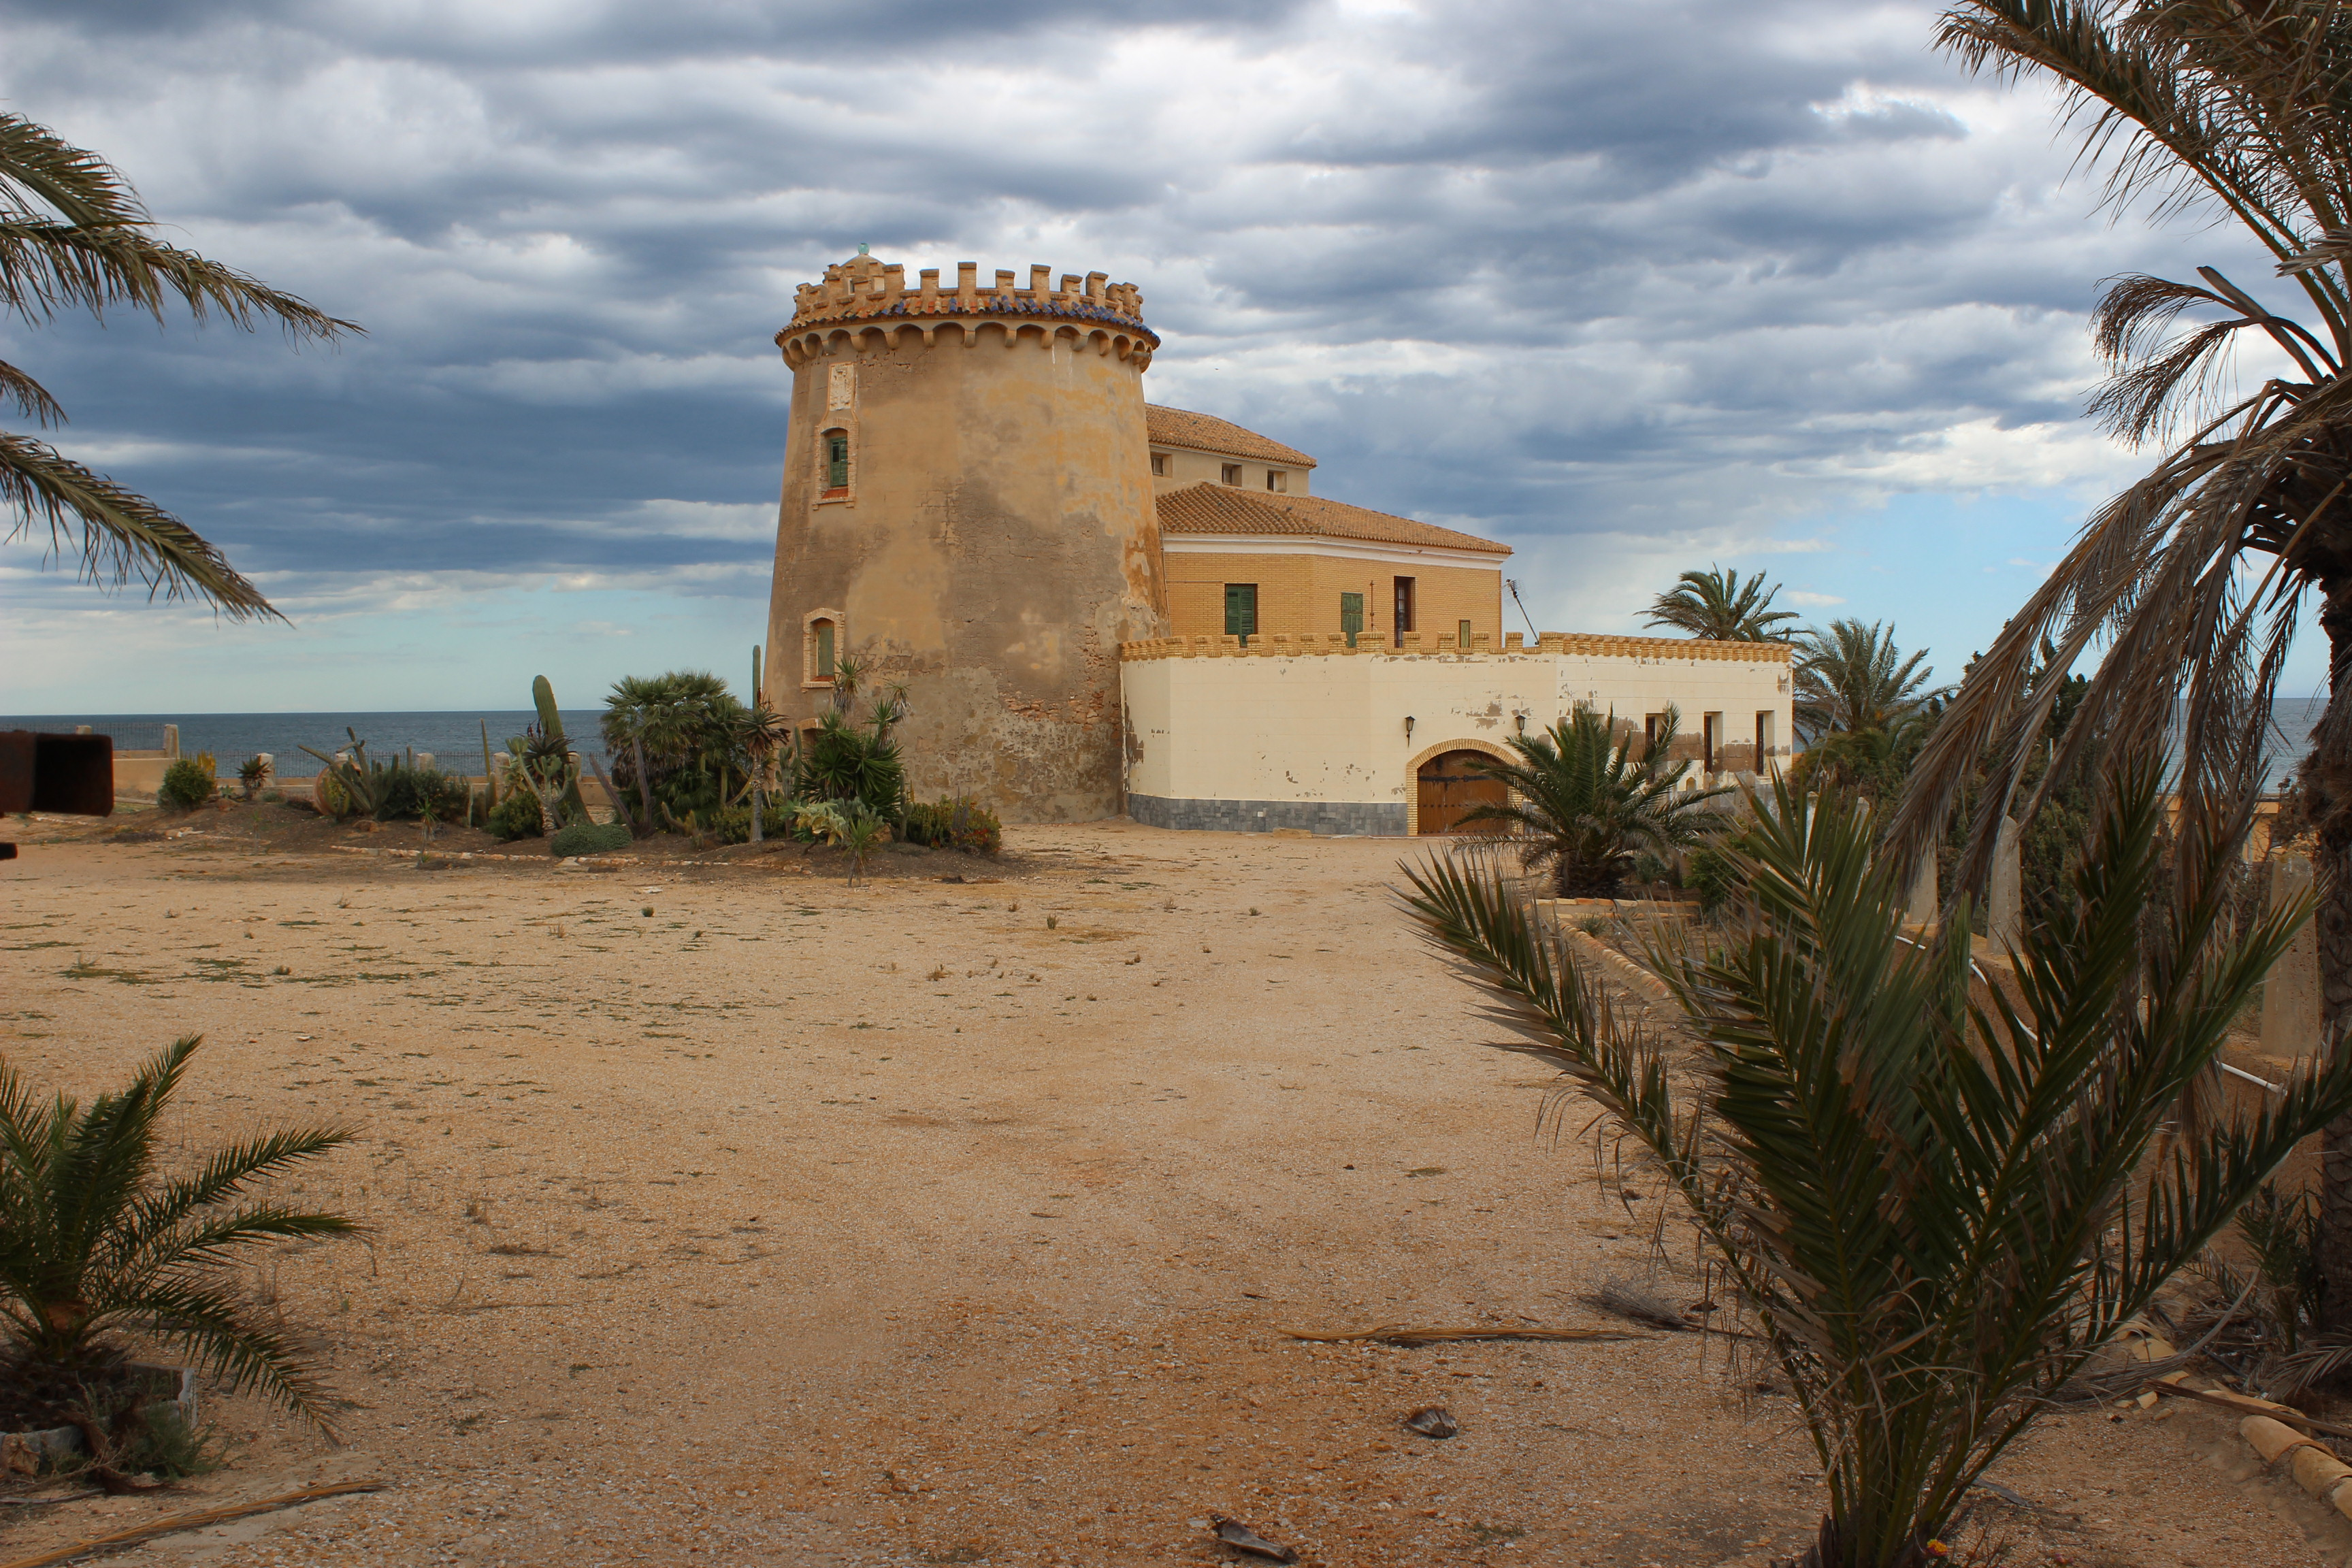 Like many watchtowers along the coast it was built as a defence to warn against pirates